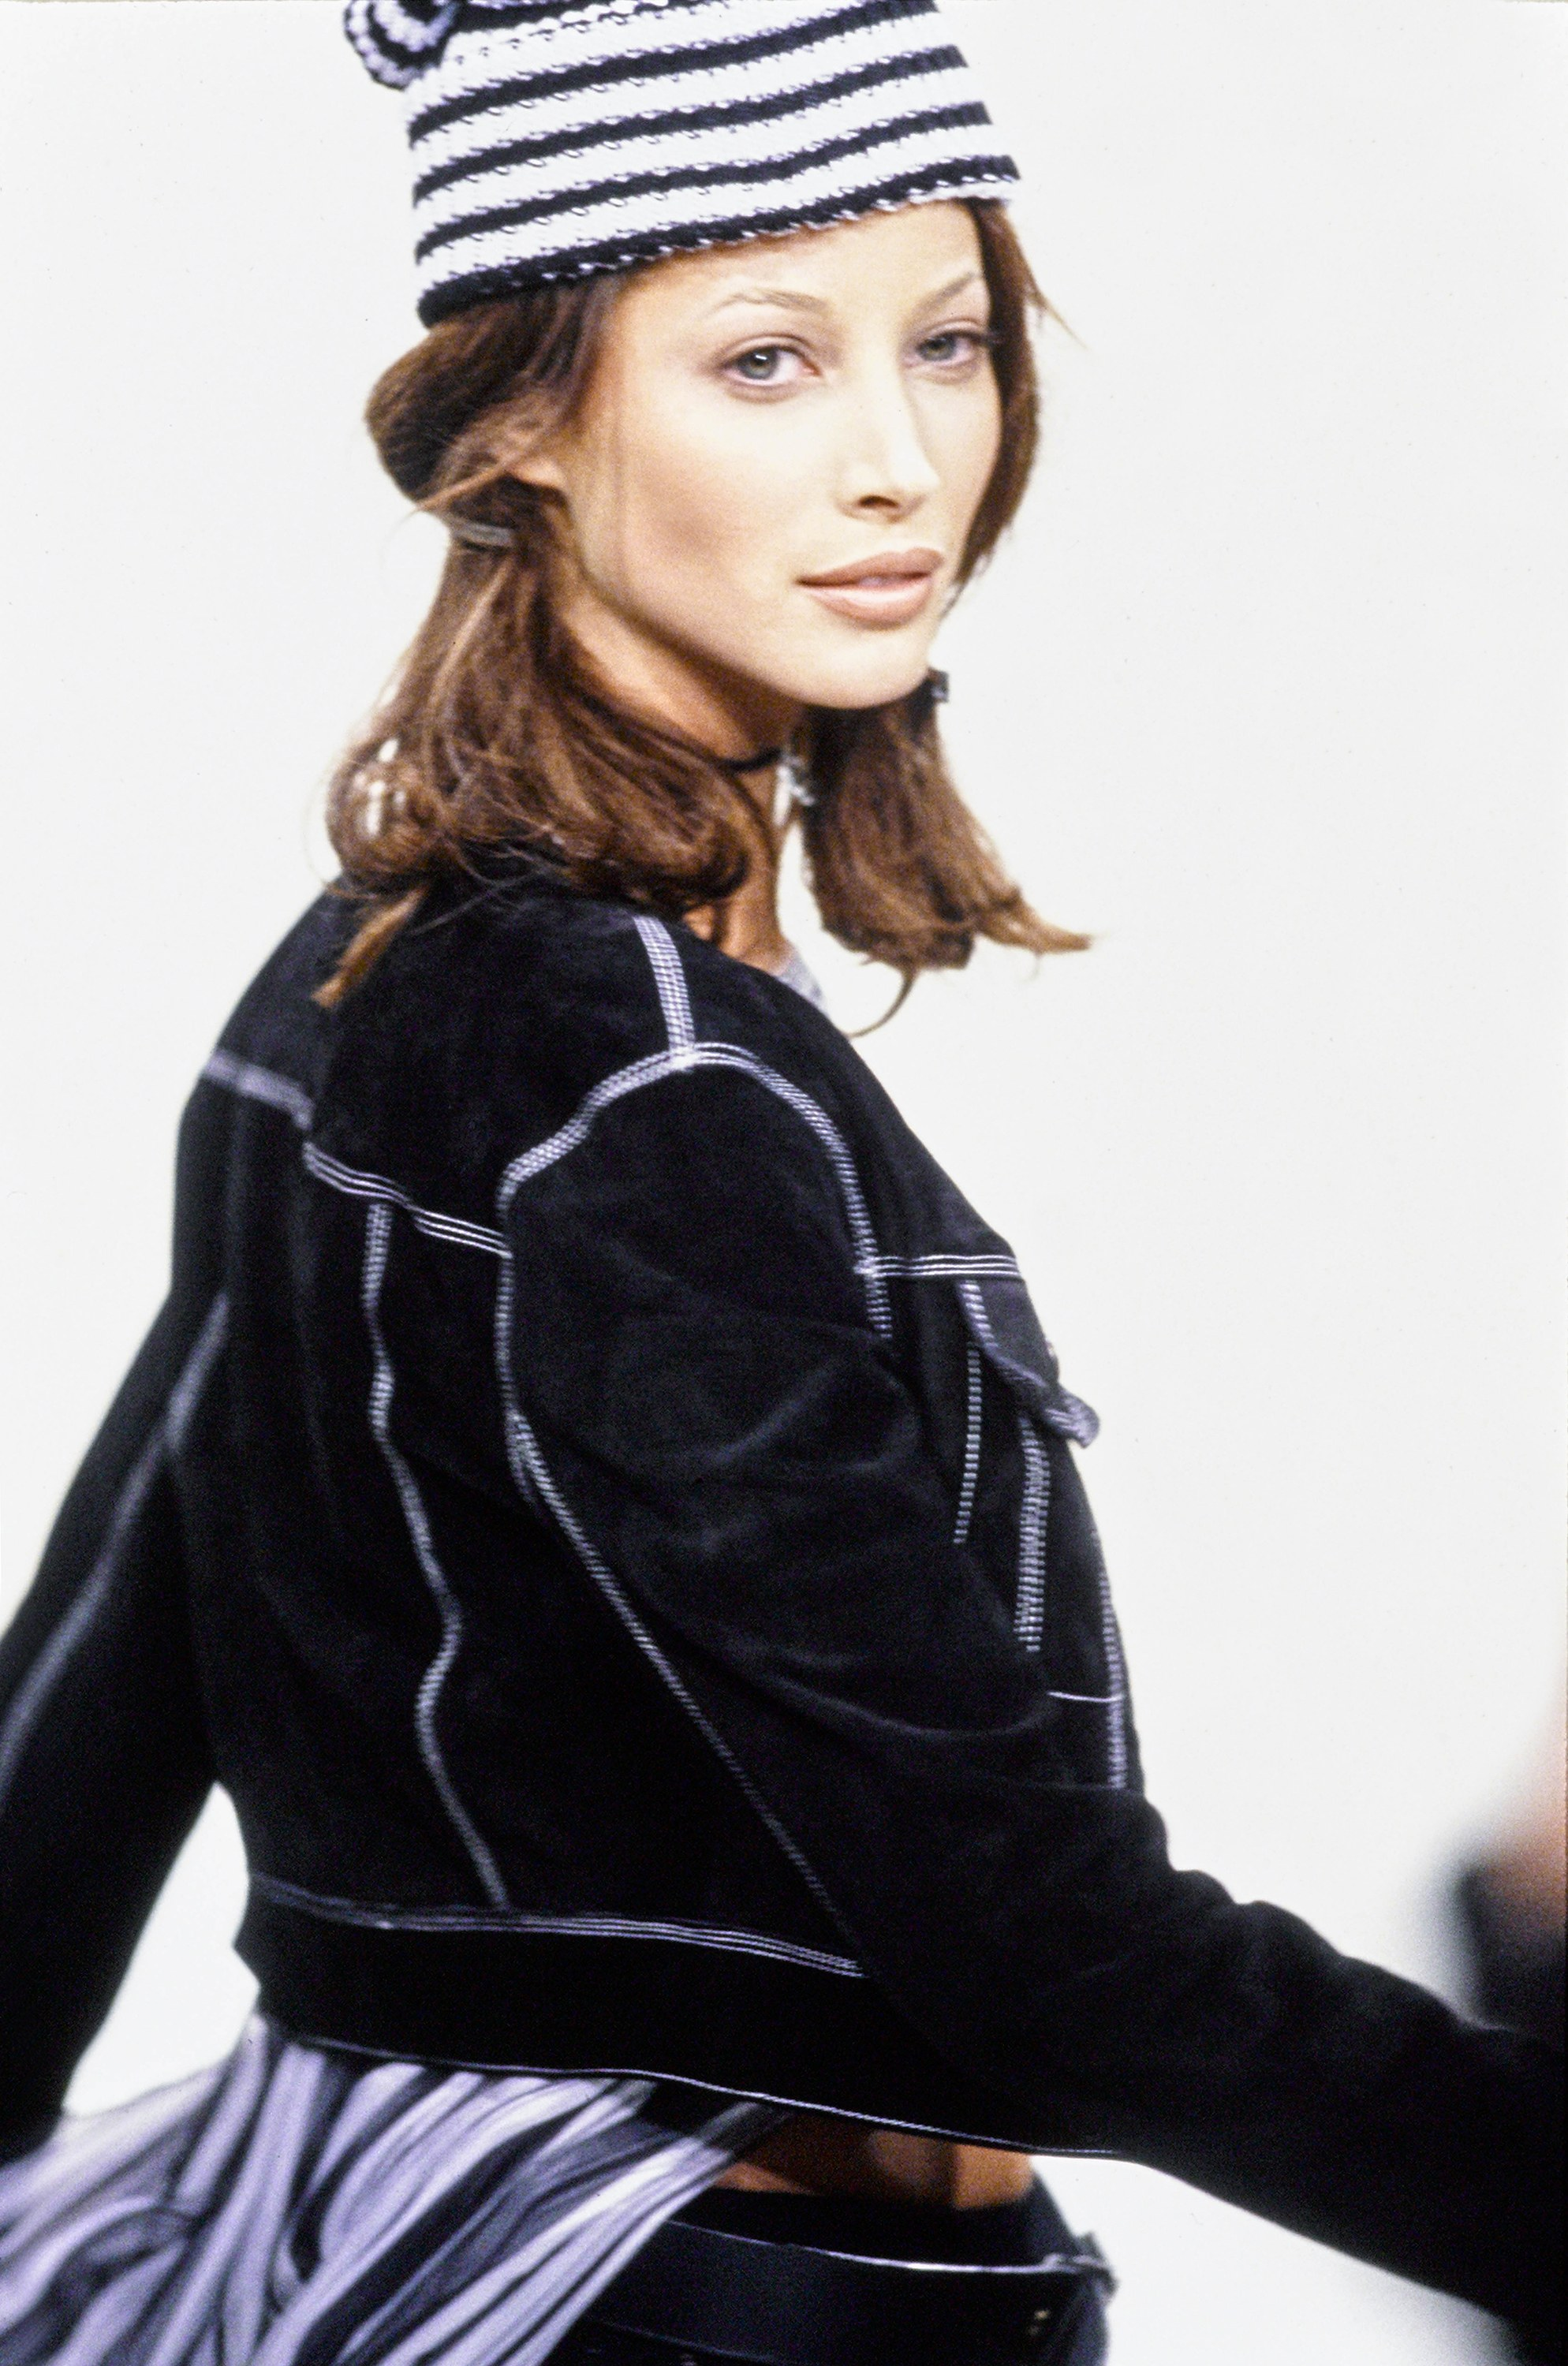 PERRY-ELLIS-SPRING-19993-RTW-22-CHRISTY-TURLINGTON